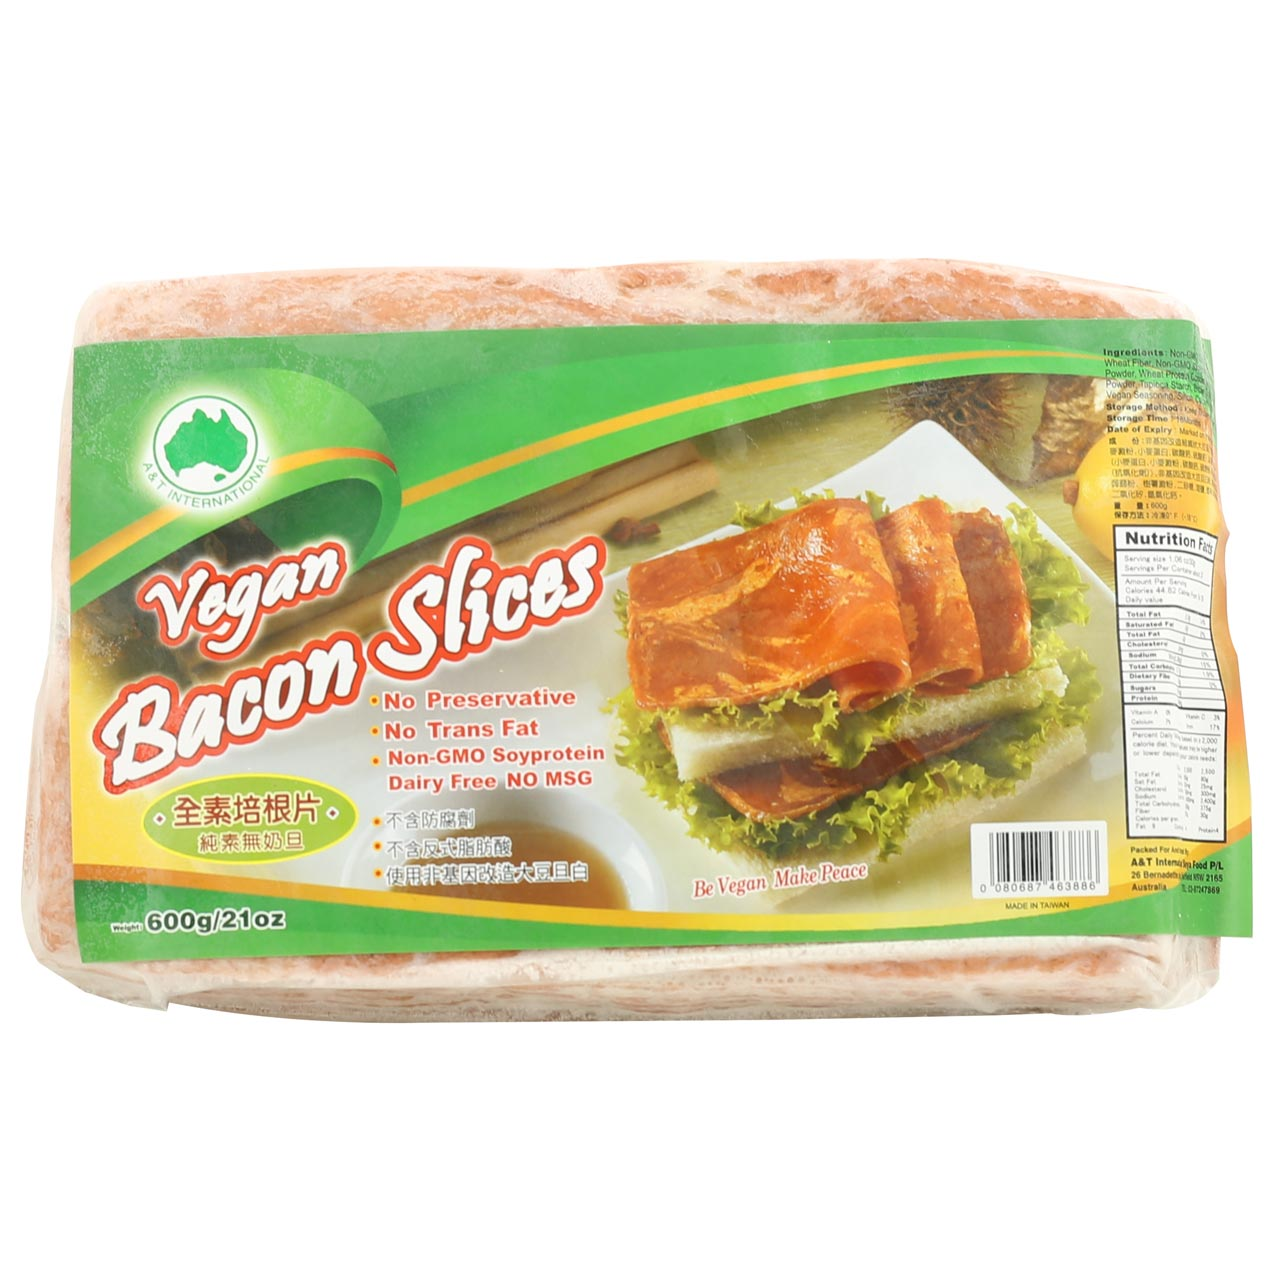 A & T Vegan Bacon Long Slices